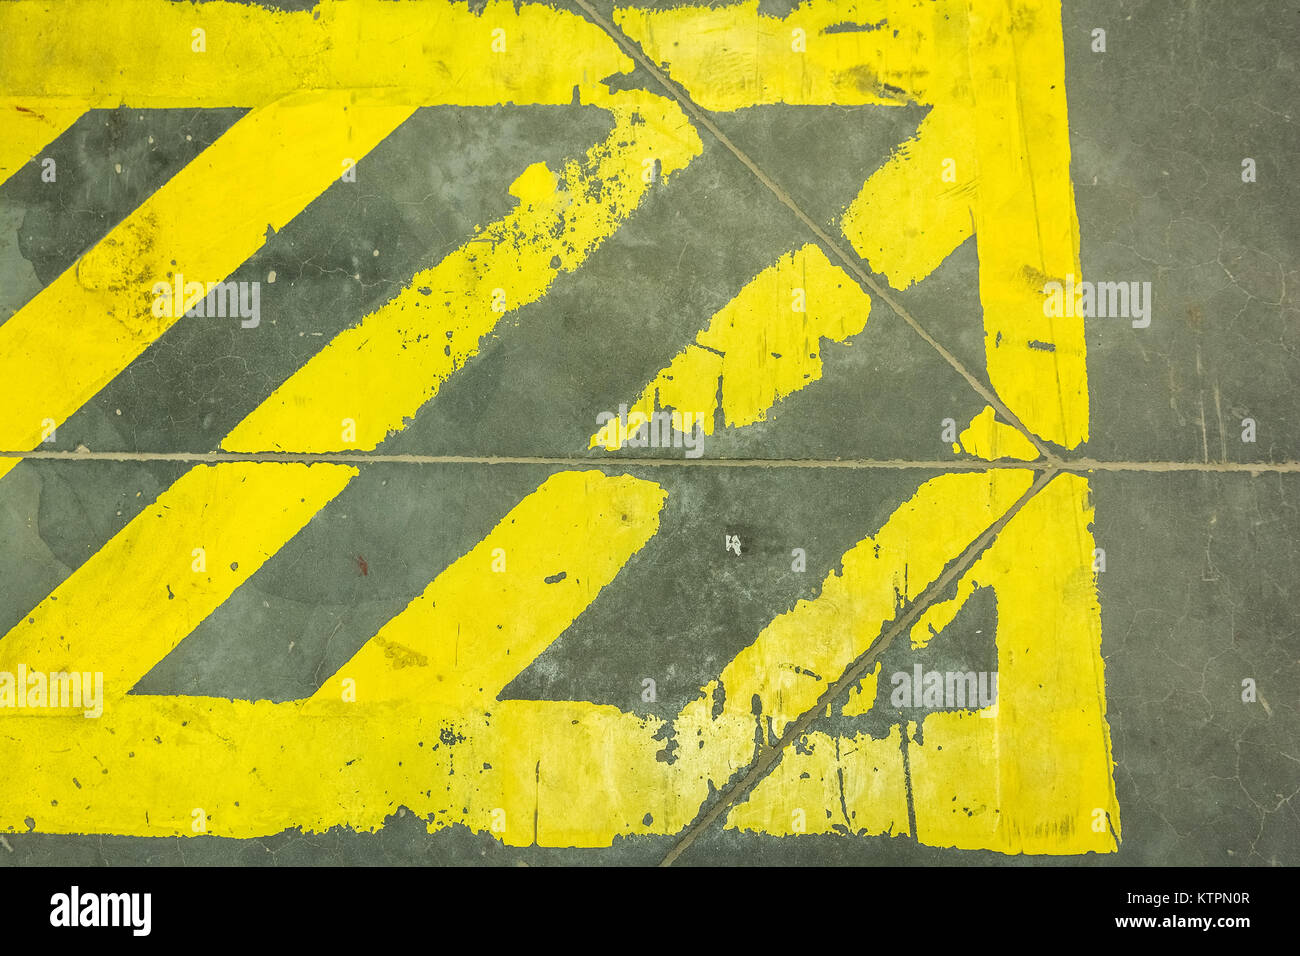 Close up yellow stripes prohibiting parking on grey surface - Stock Image